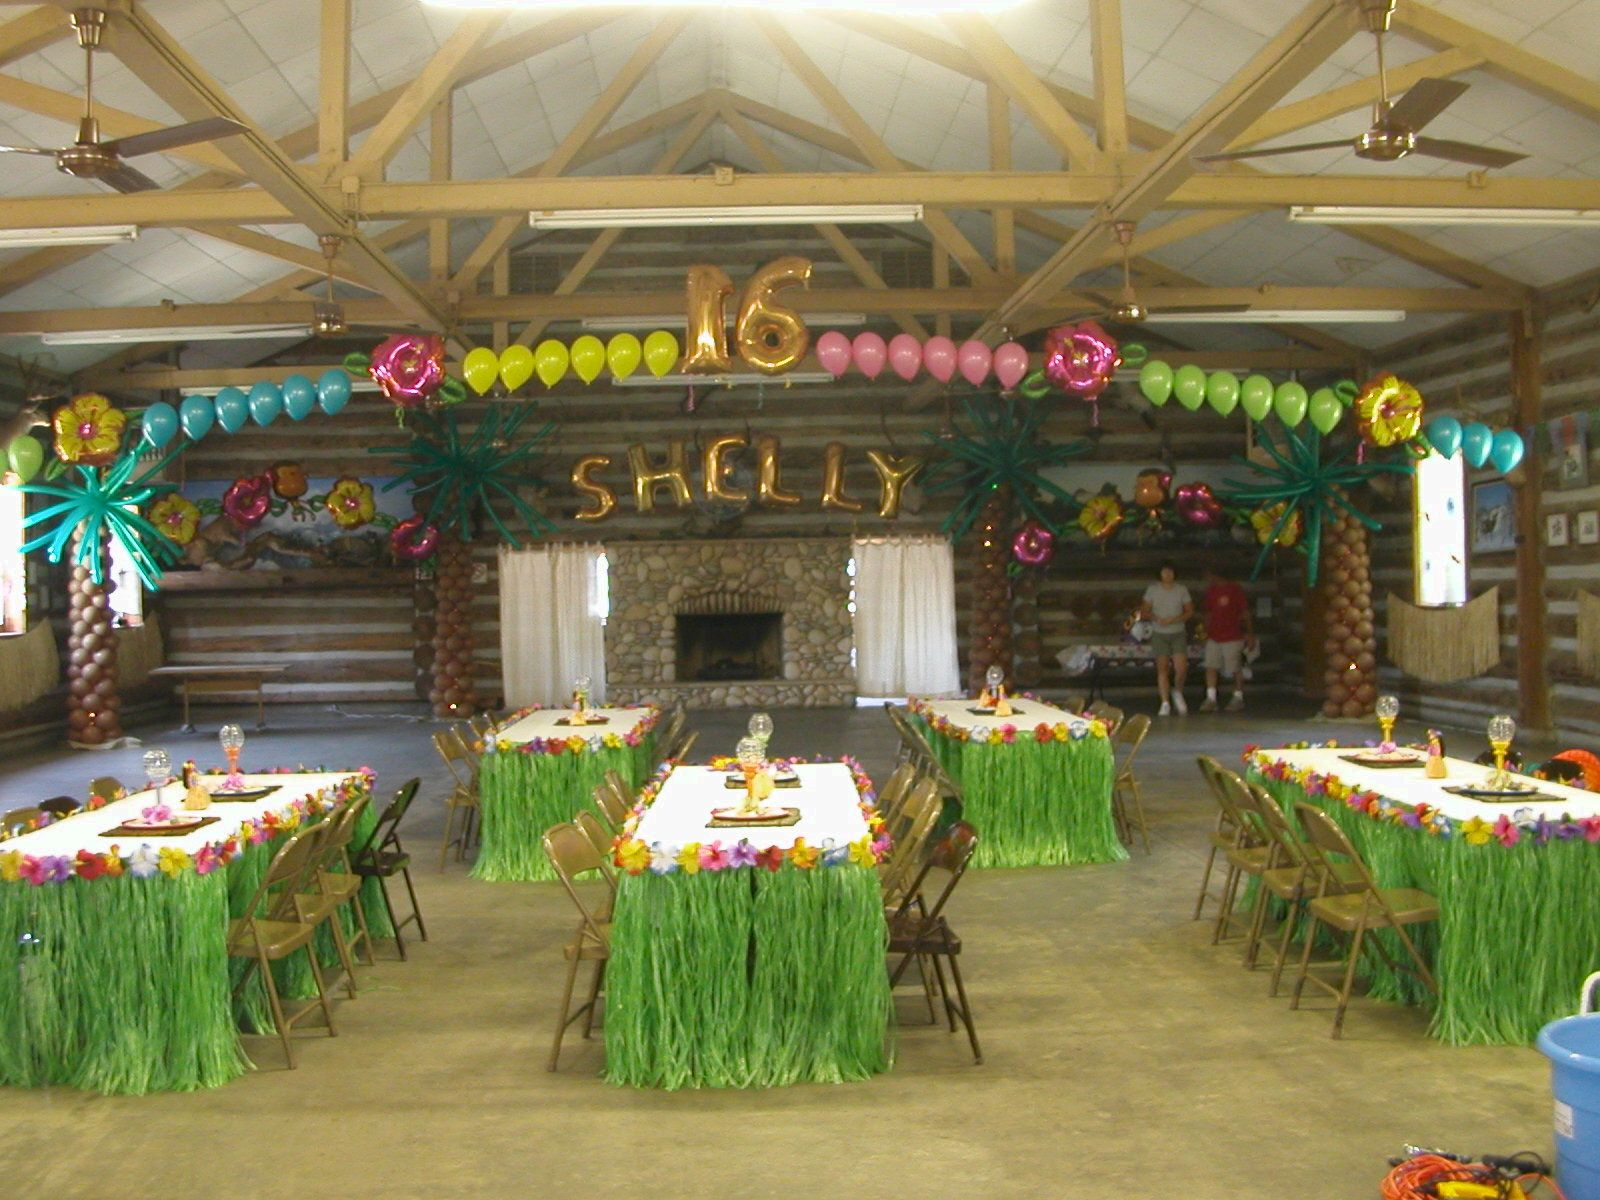 Decoration Stuff For Party 1000 Ideas About Luau Party Decorations On Pinterest Luau